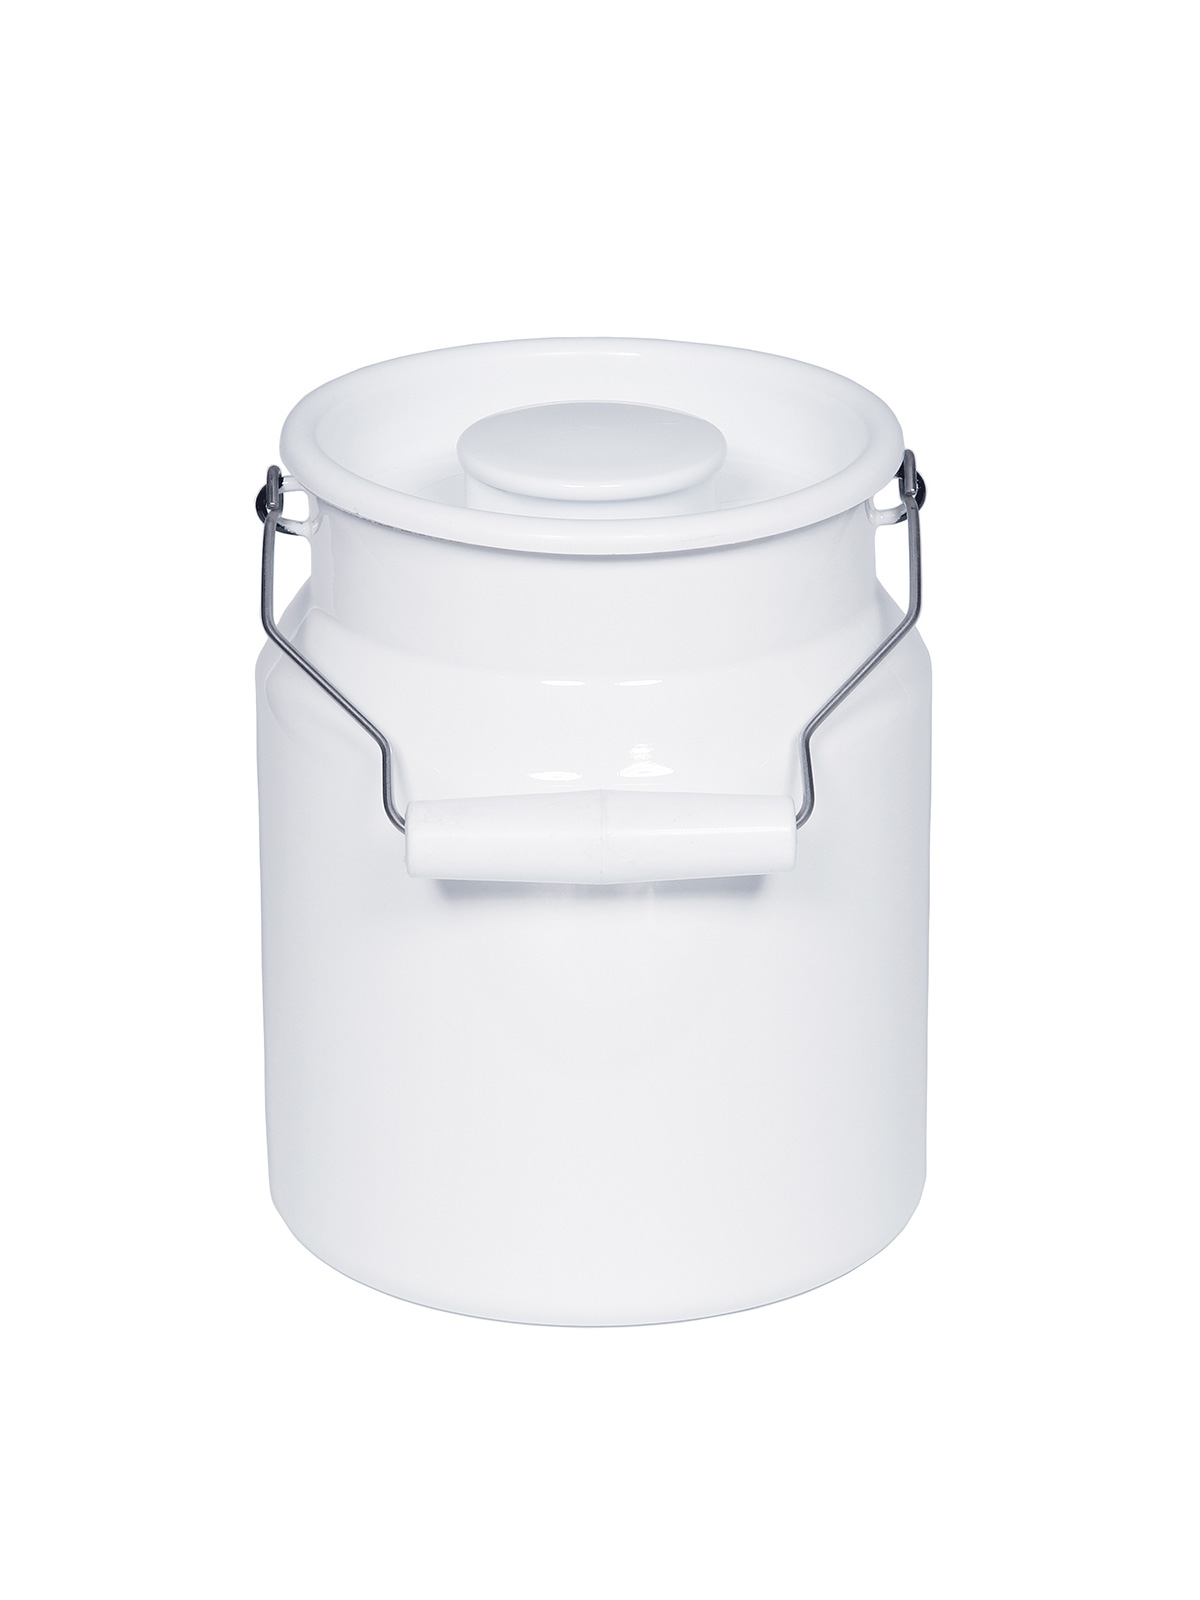 Grandma's Milkcan with lid and handle 2L 0339-033